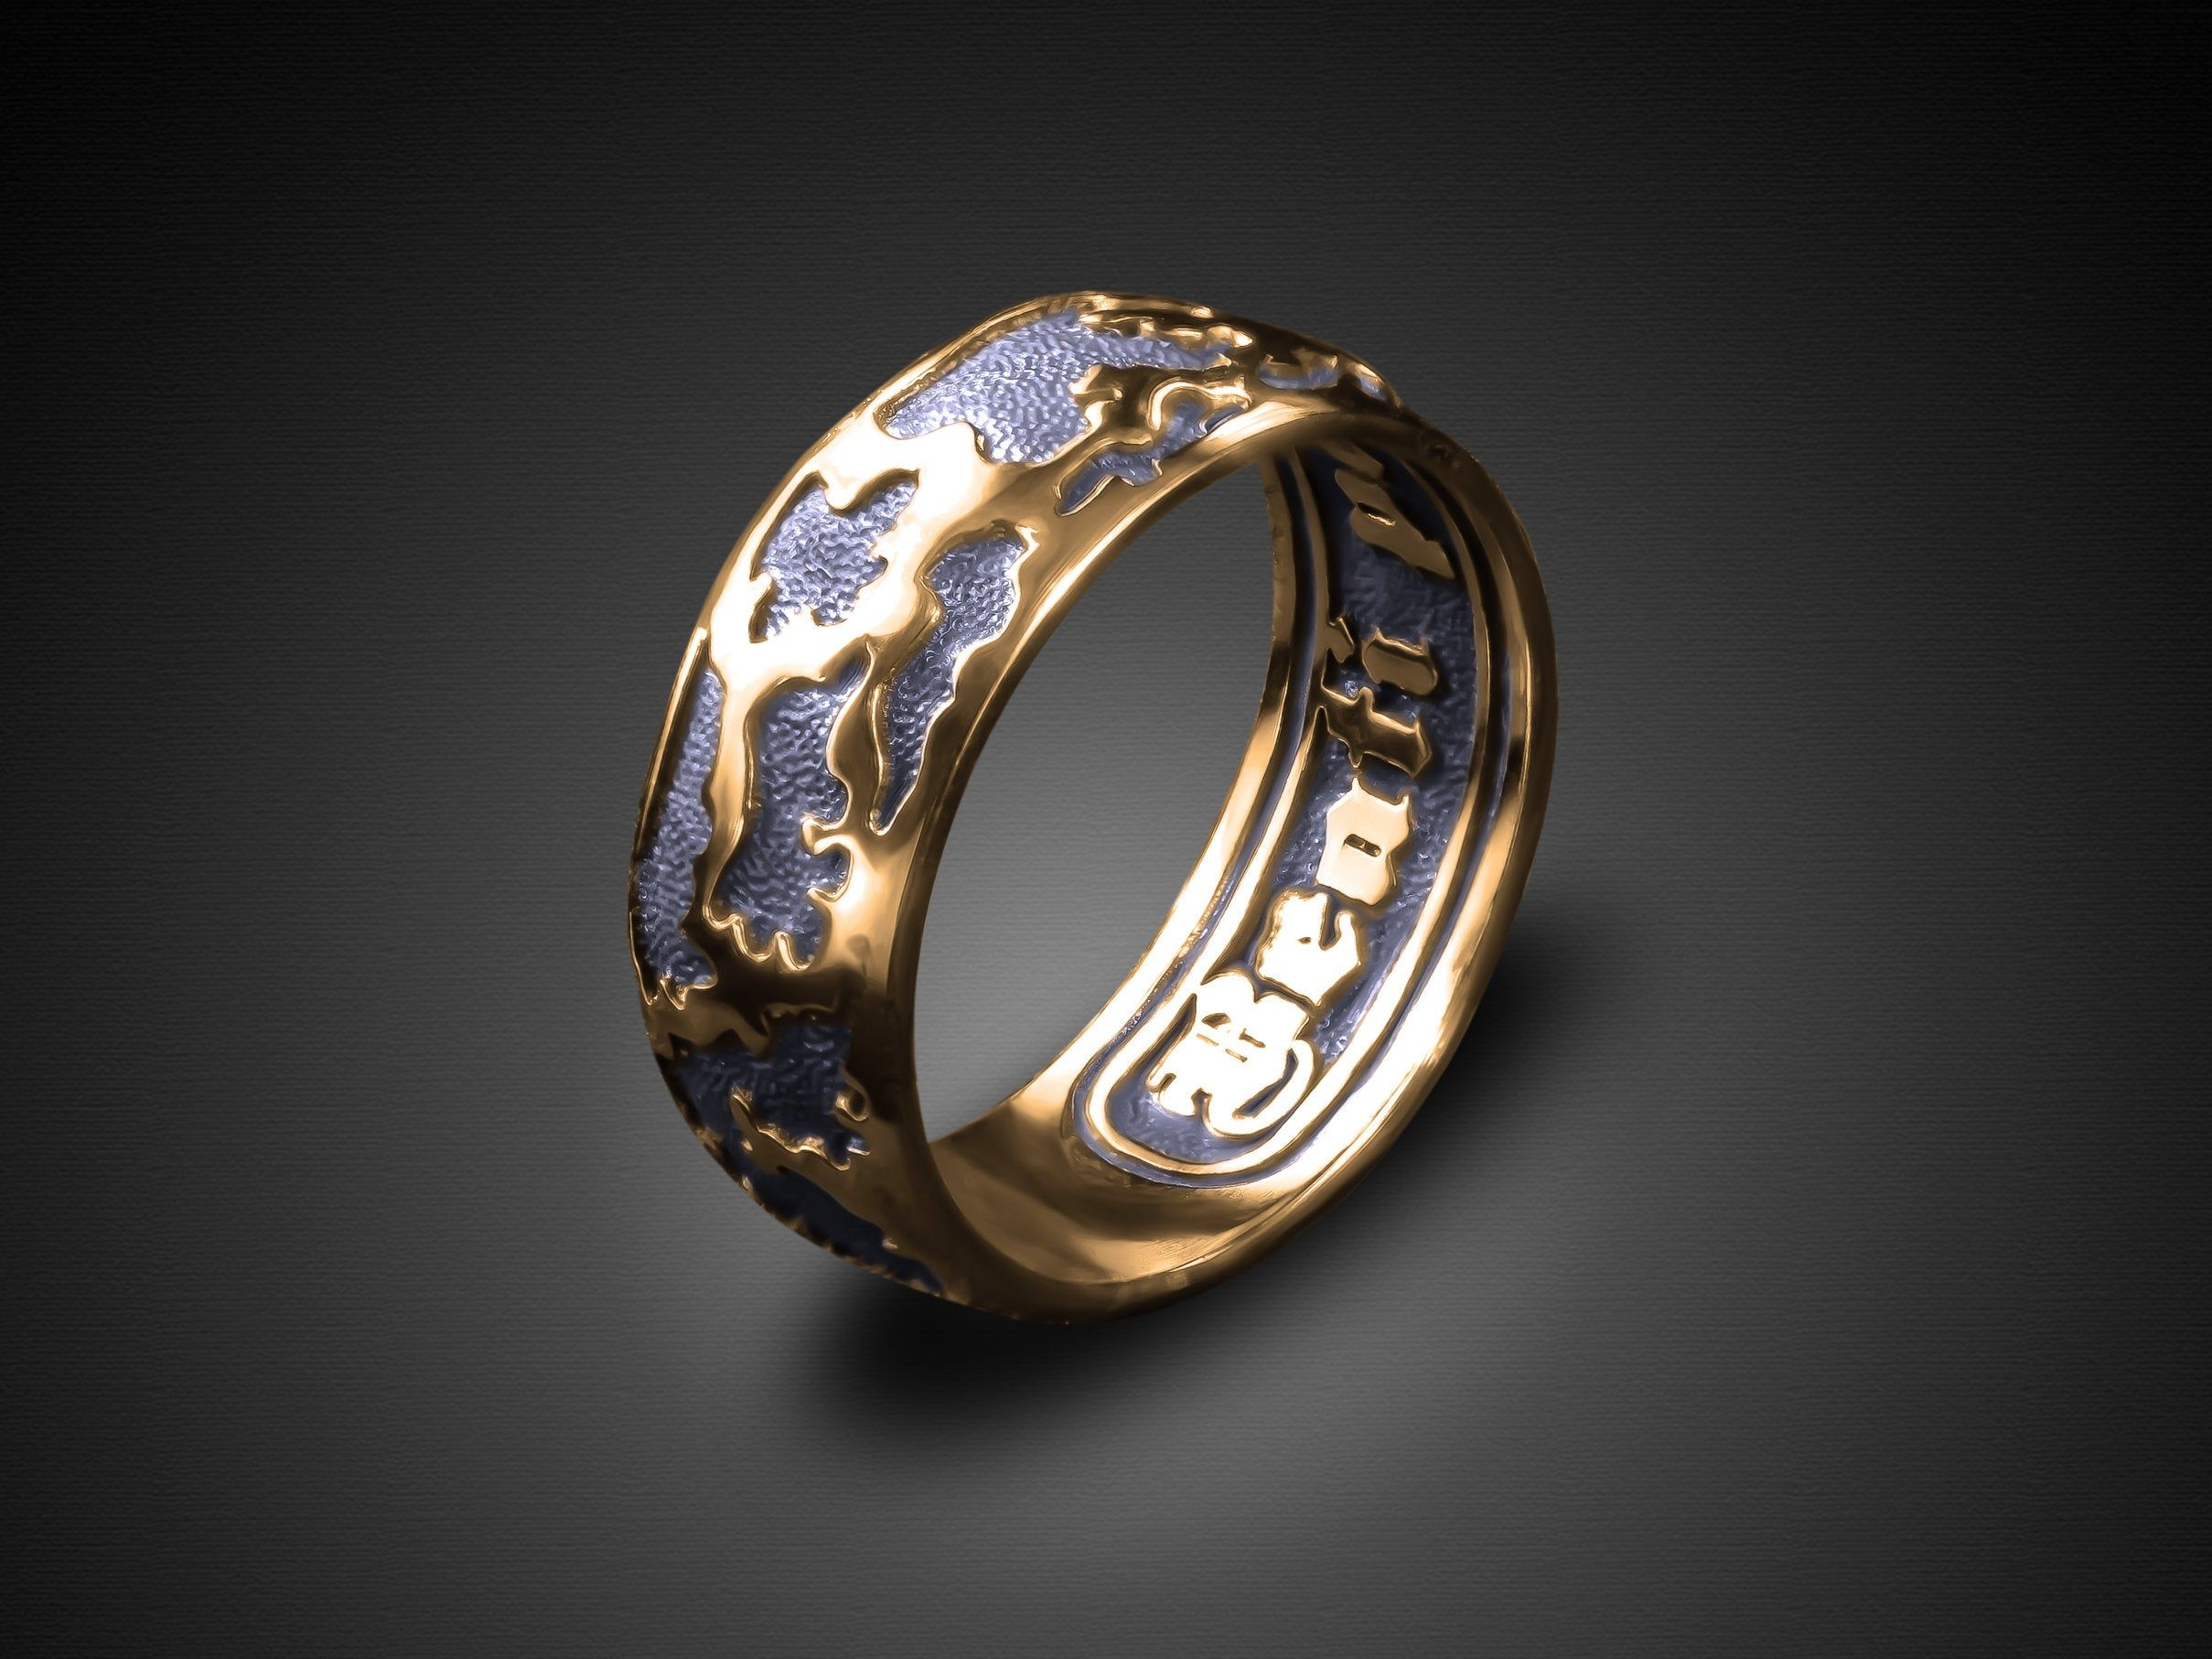 Miracle Happy Ring Beati Possidentes Happy Possessing Forever With You Luck Choose Happy Mantra Ring Inspiration Ring Message Inside Motivat Inspirational Ring Wedding Rings Rings For Men